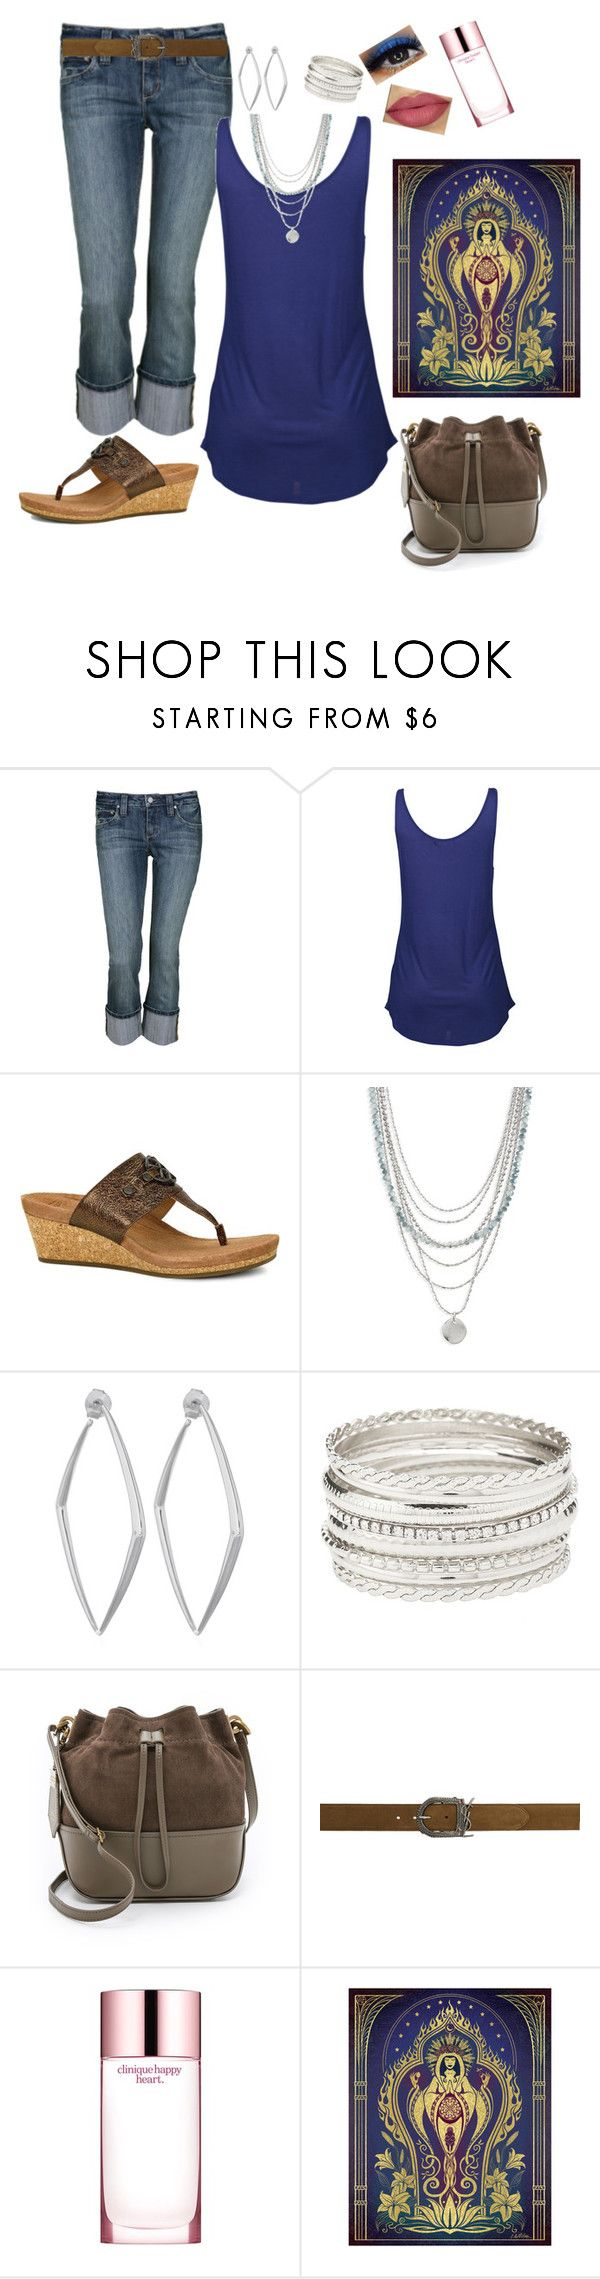 """""""Ready For the Warm Weather Blues"""" by melissa-markel ❤ liked on Polyvore featuring Agent Ninetynine, UGG, Treasure & Bond, Dinny Hall, Charlotte Russe, ZAC Zac Posen, Yves Saint Laurent and Clinique"""